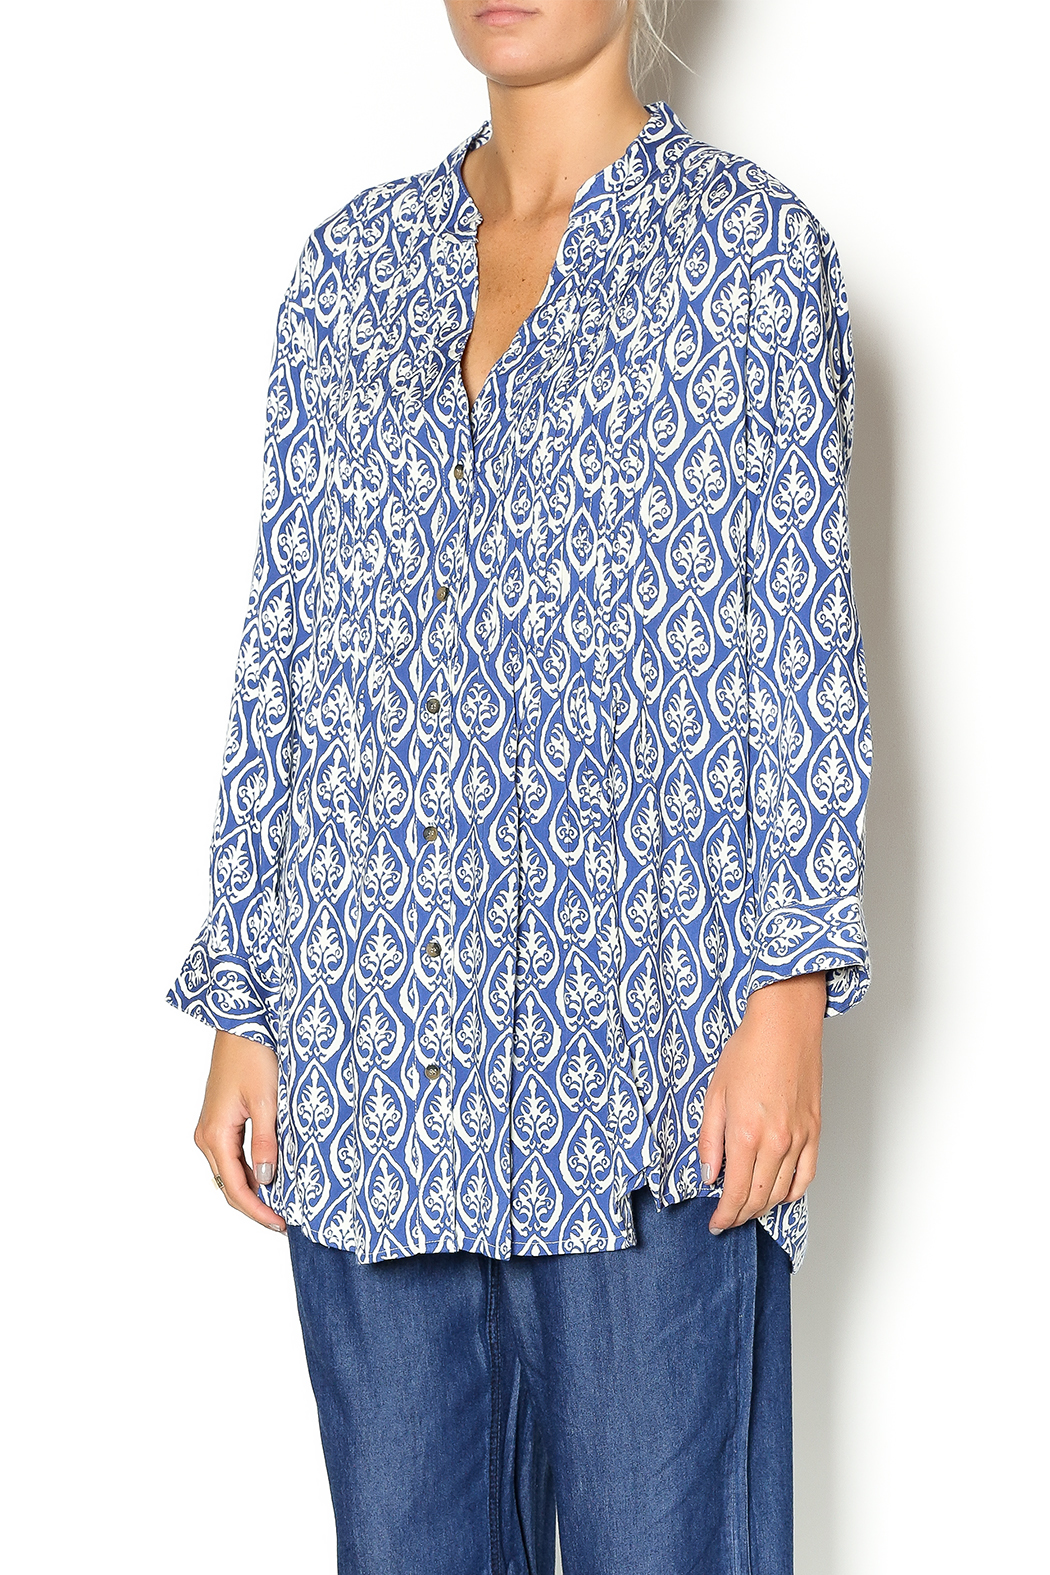 Rock flower paper pintuck cotton tunic from dallas by bradbury lane rock flower paper pintuck cotton tunic front cropped image mightylinksfo Gallery